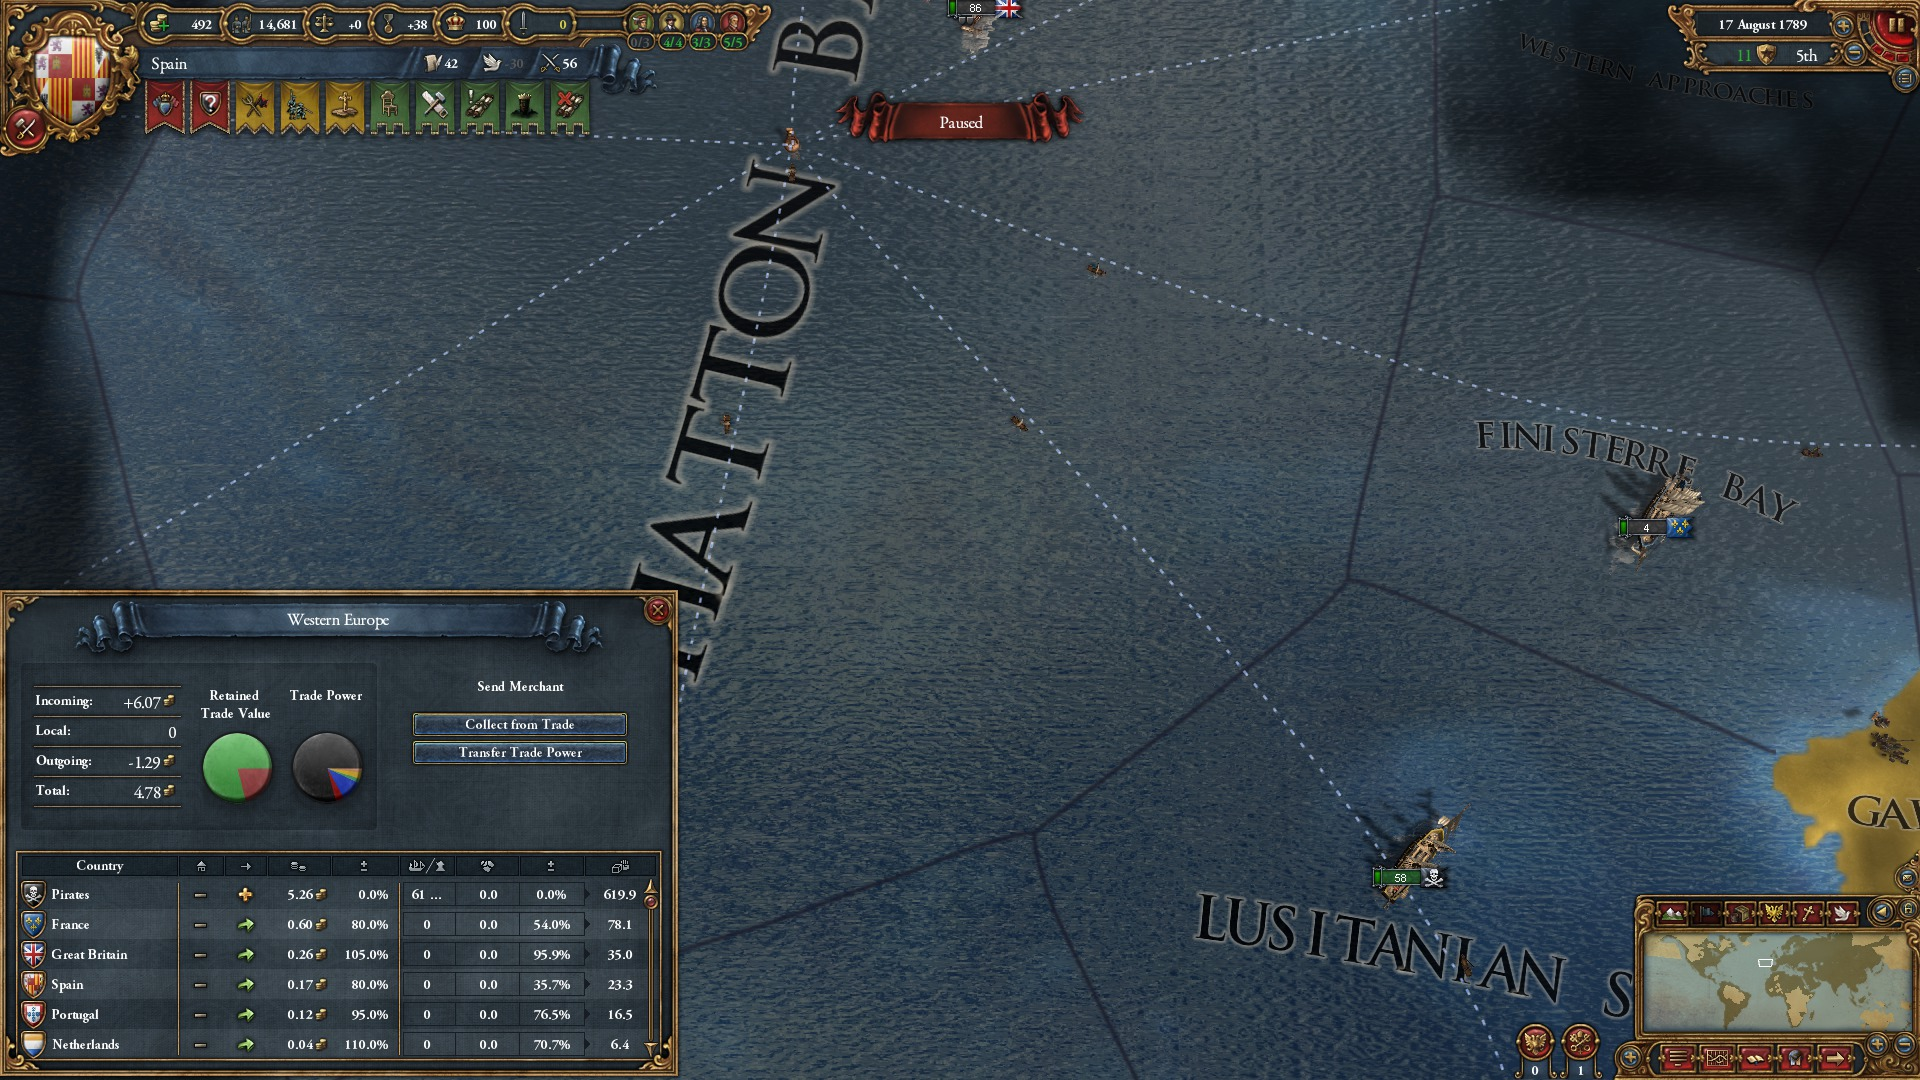 Expansion - Europa Universalis IV: Wealth of Nations